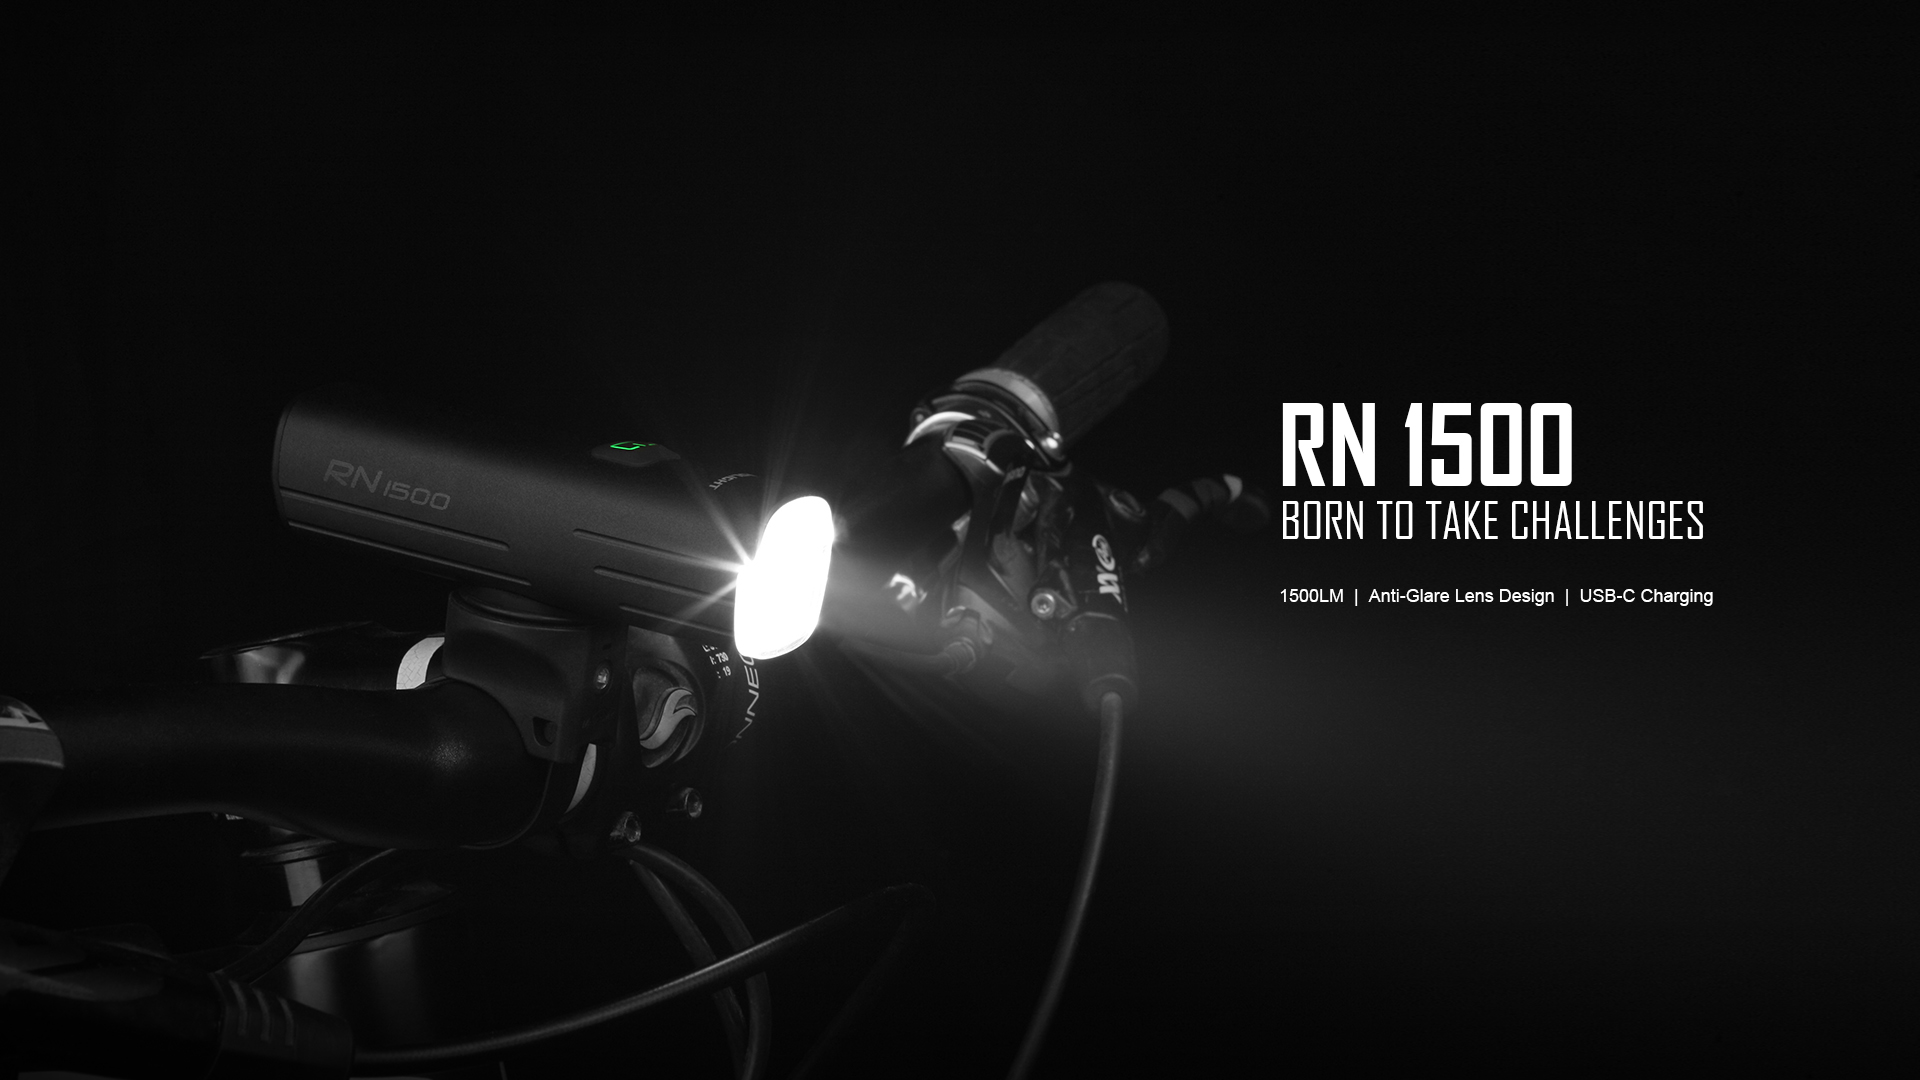 Born to take challenges RN1500 Bicycle Front Light